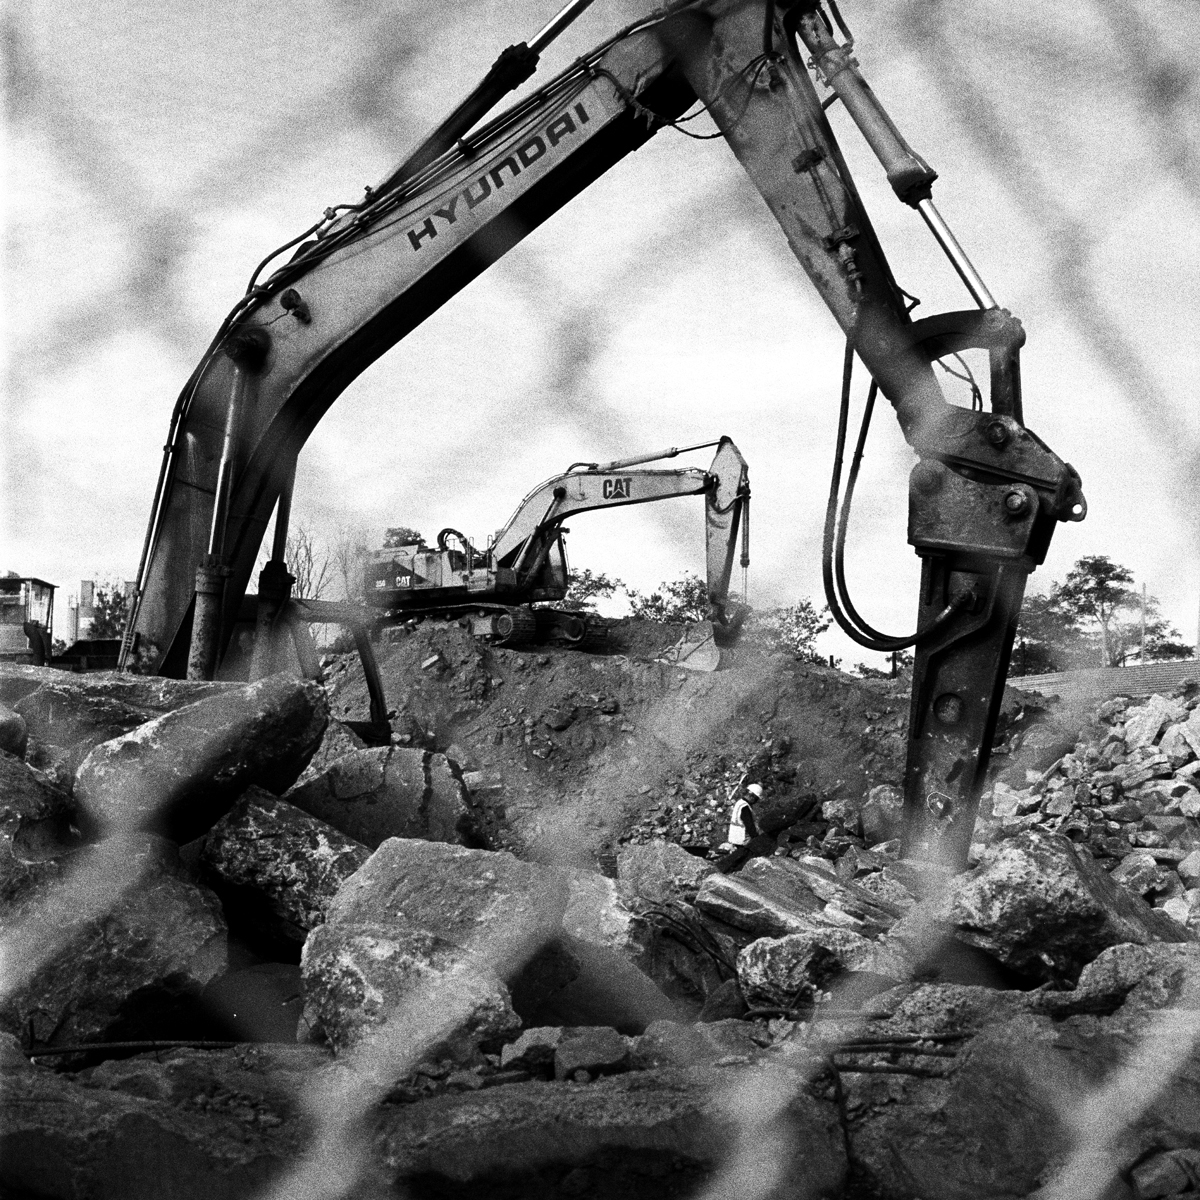 Workers between backhoe loaders break up old chunks of concrete and mince them into fine pebbles for reuse as filler on new concrete projects in Maspeth, Queens, New York. A makeshift memorial for Thomas R. Dolphin was put up near the intersection of Meeker Avenue and Gardner Avenue in Greenpoint, Brooklyn, N.Y. (Photo by Dakota Santiago/GroundTruth)